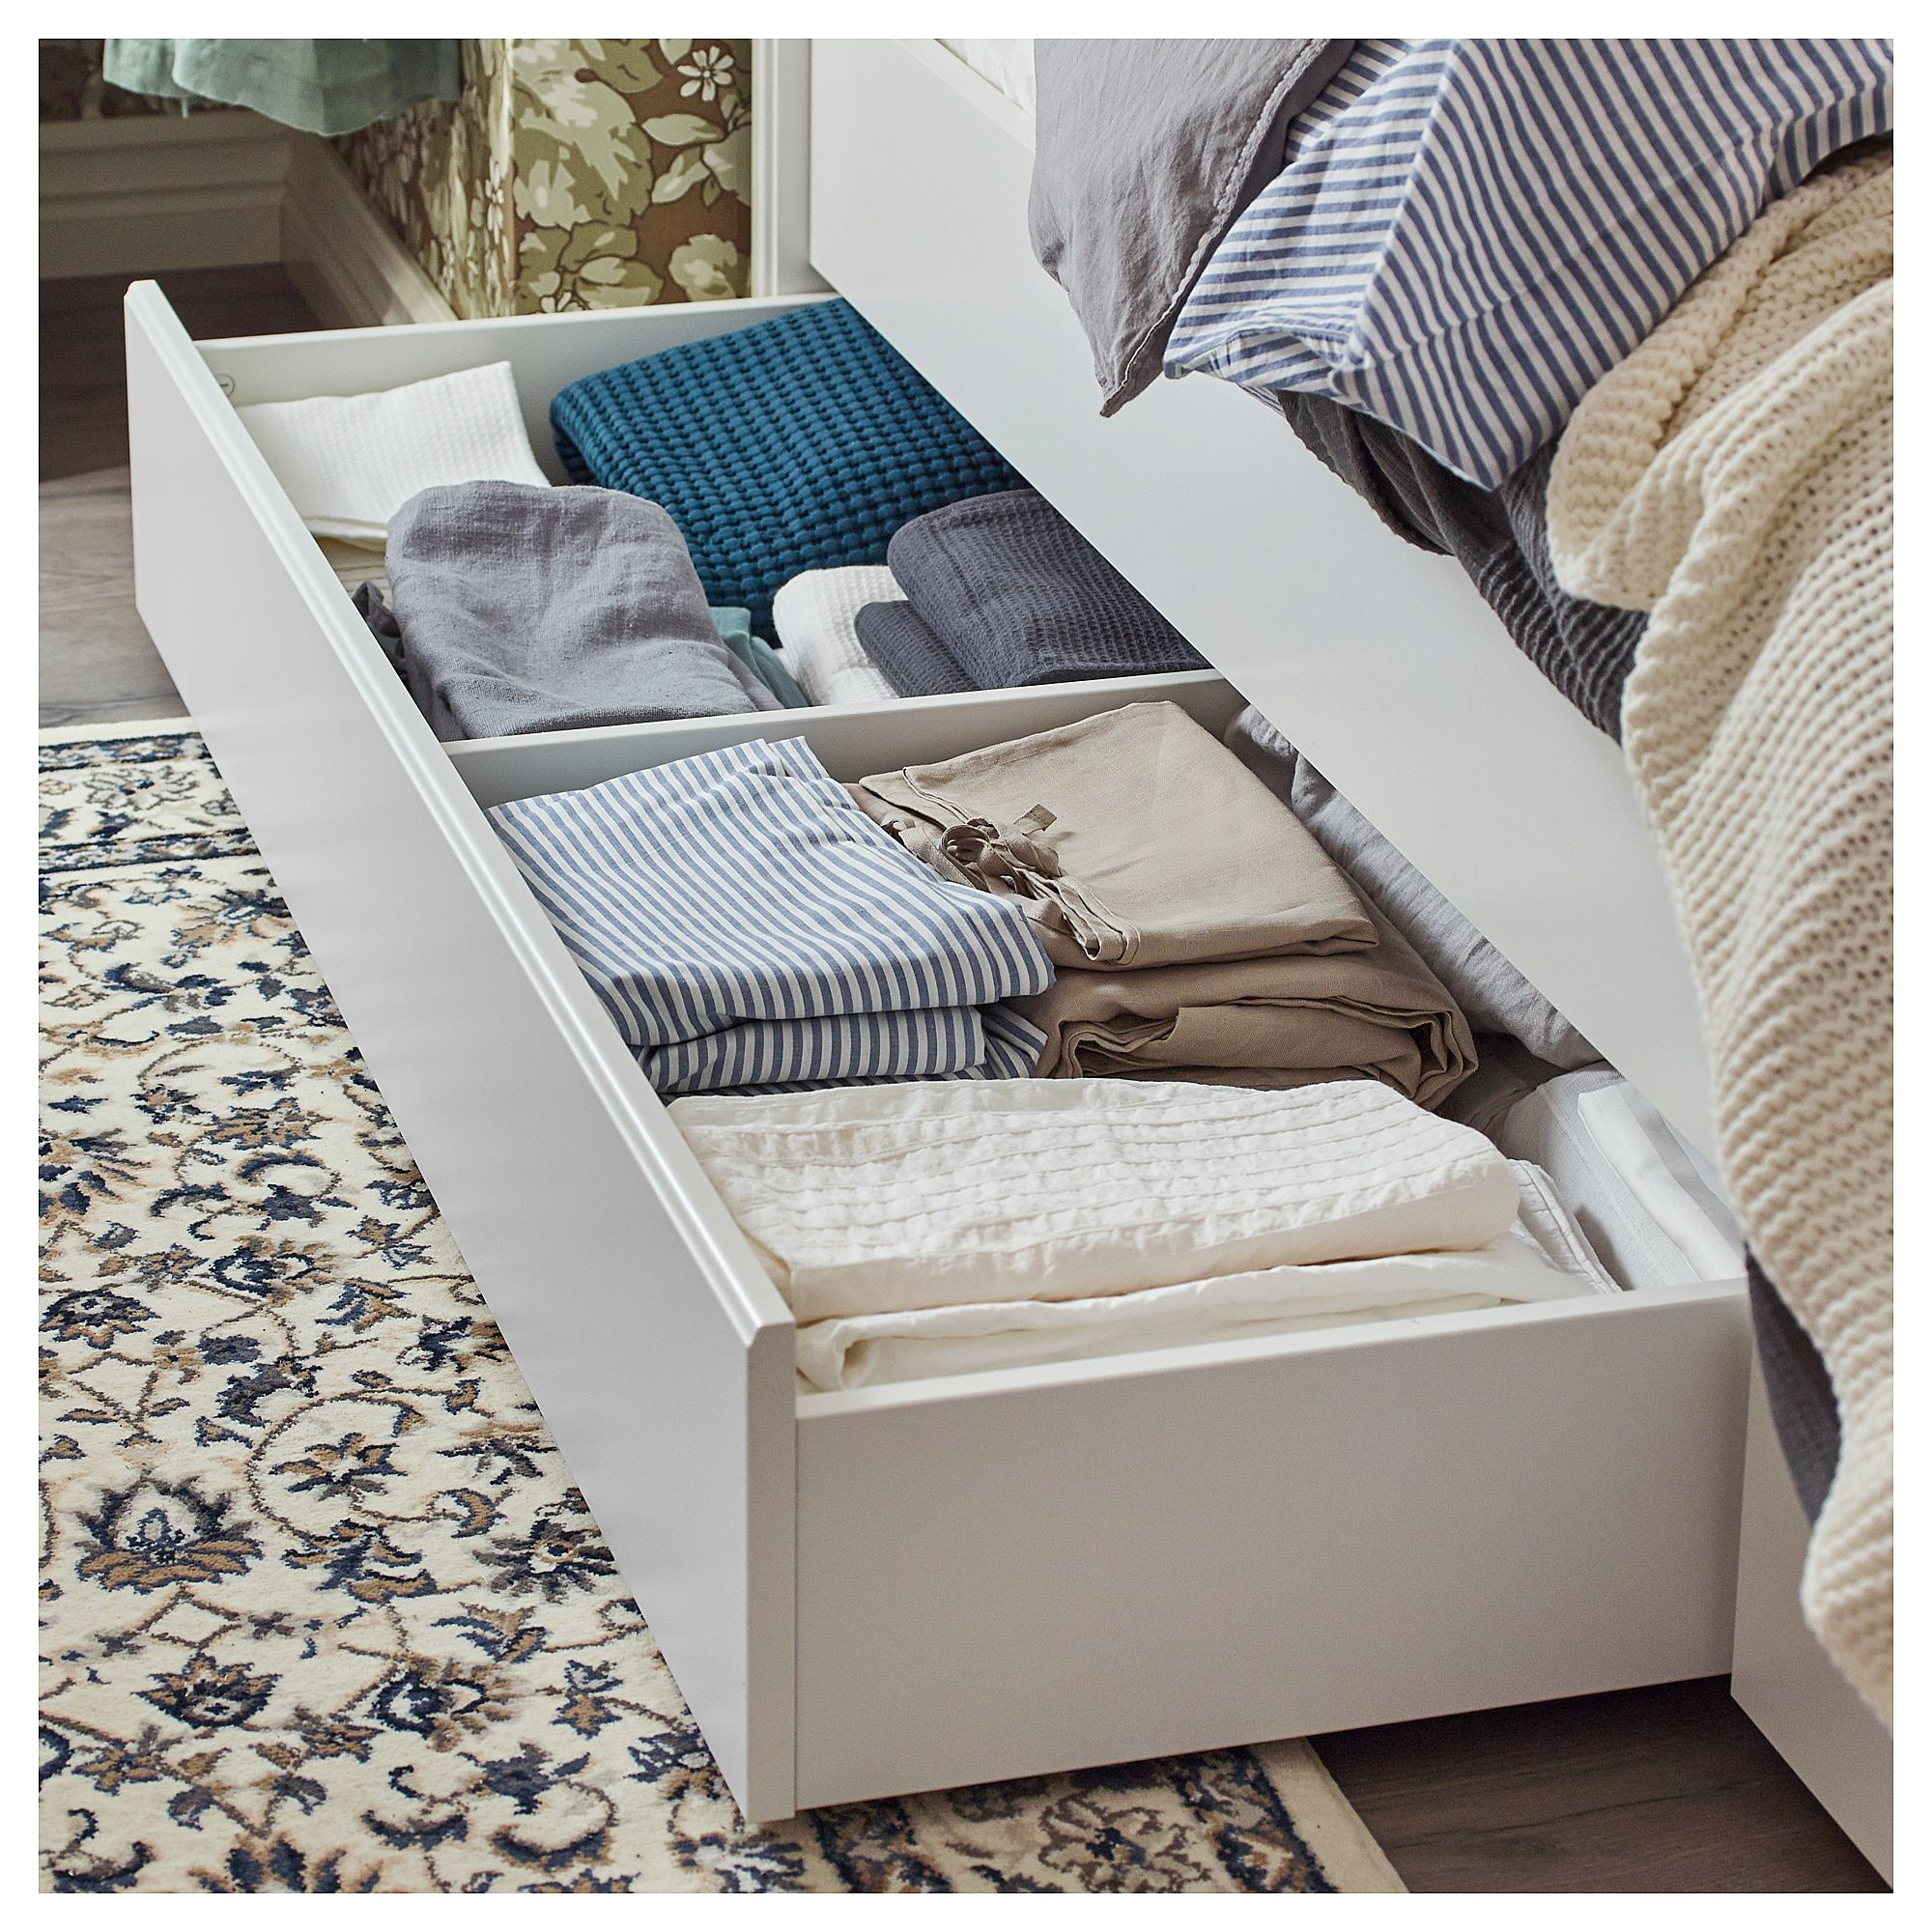 SONGESAND Bed frame with 2 storage boxes, brown in 2018 | New ...